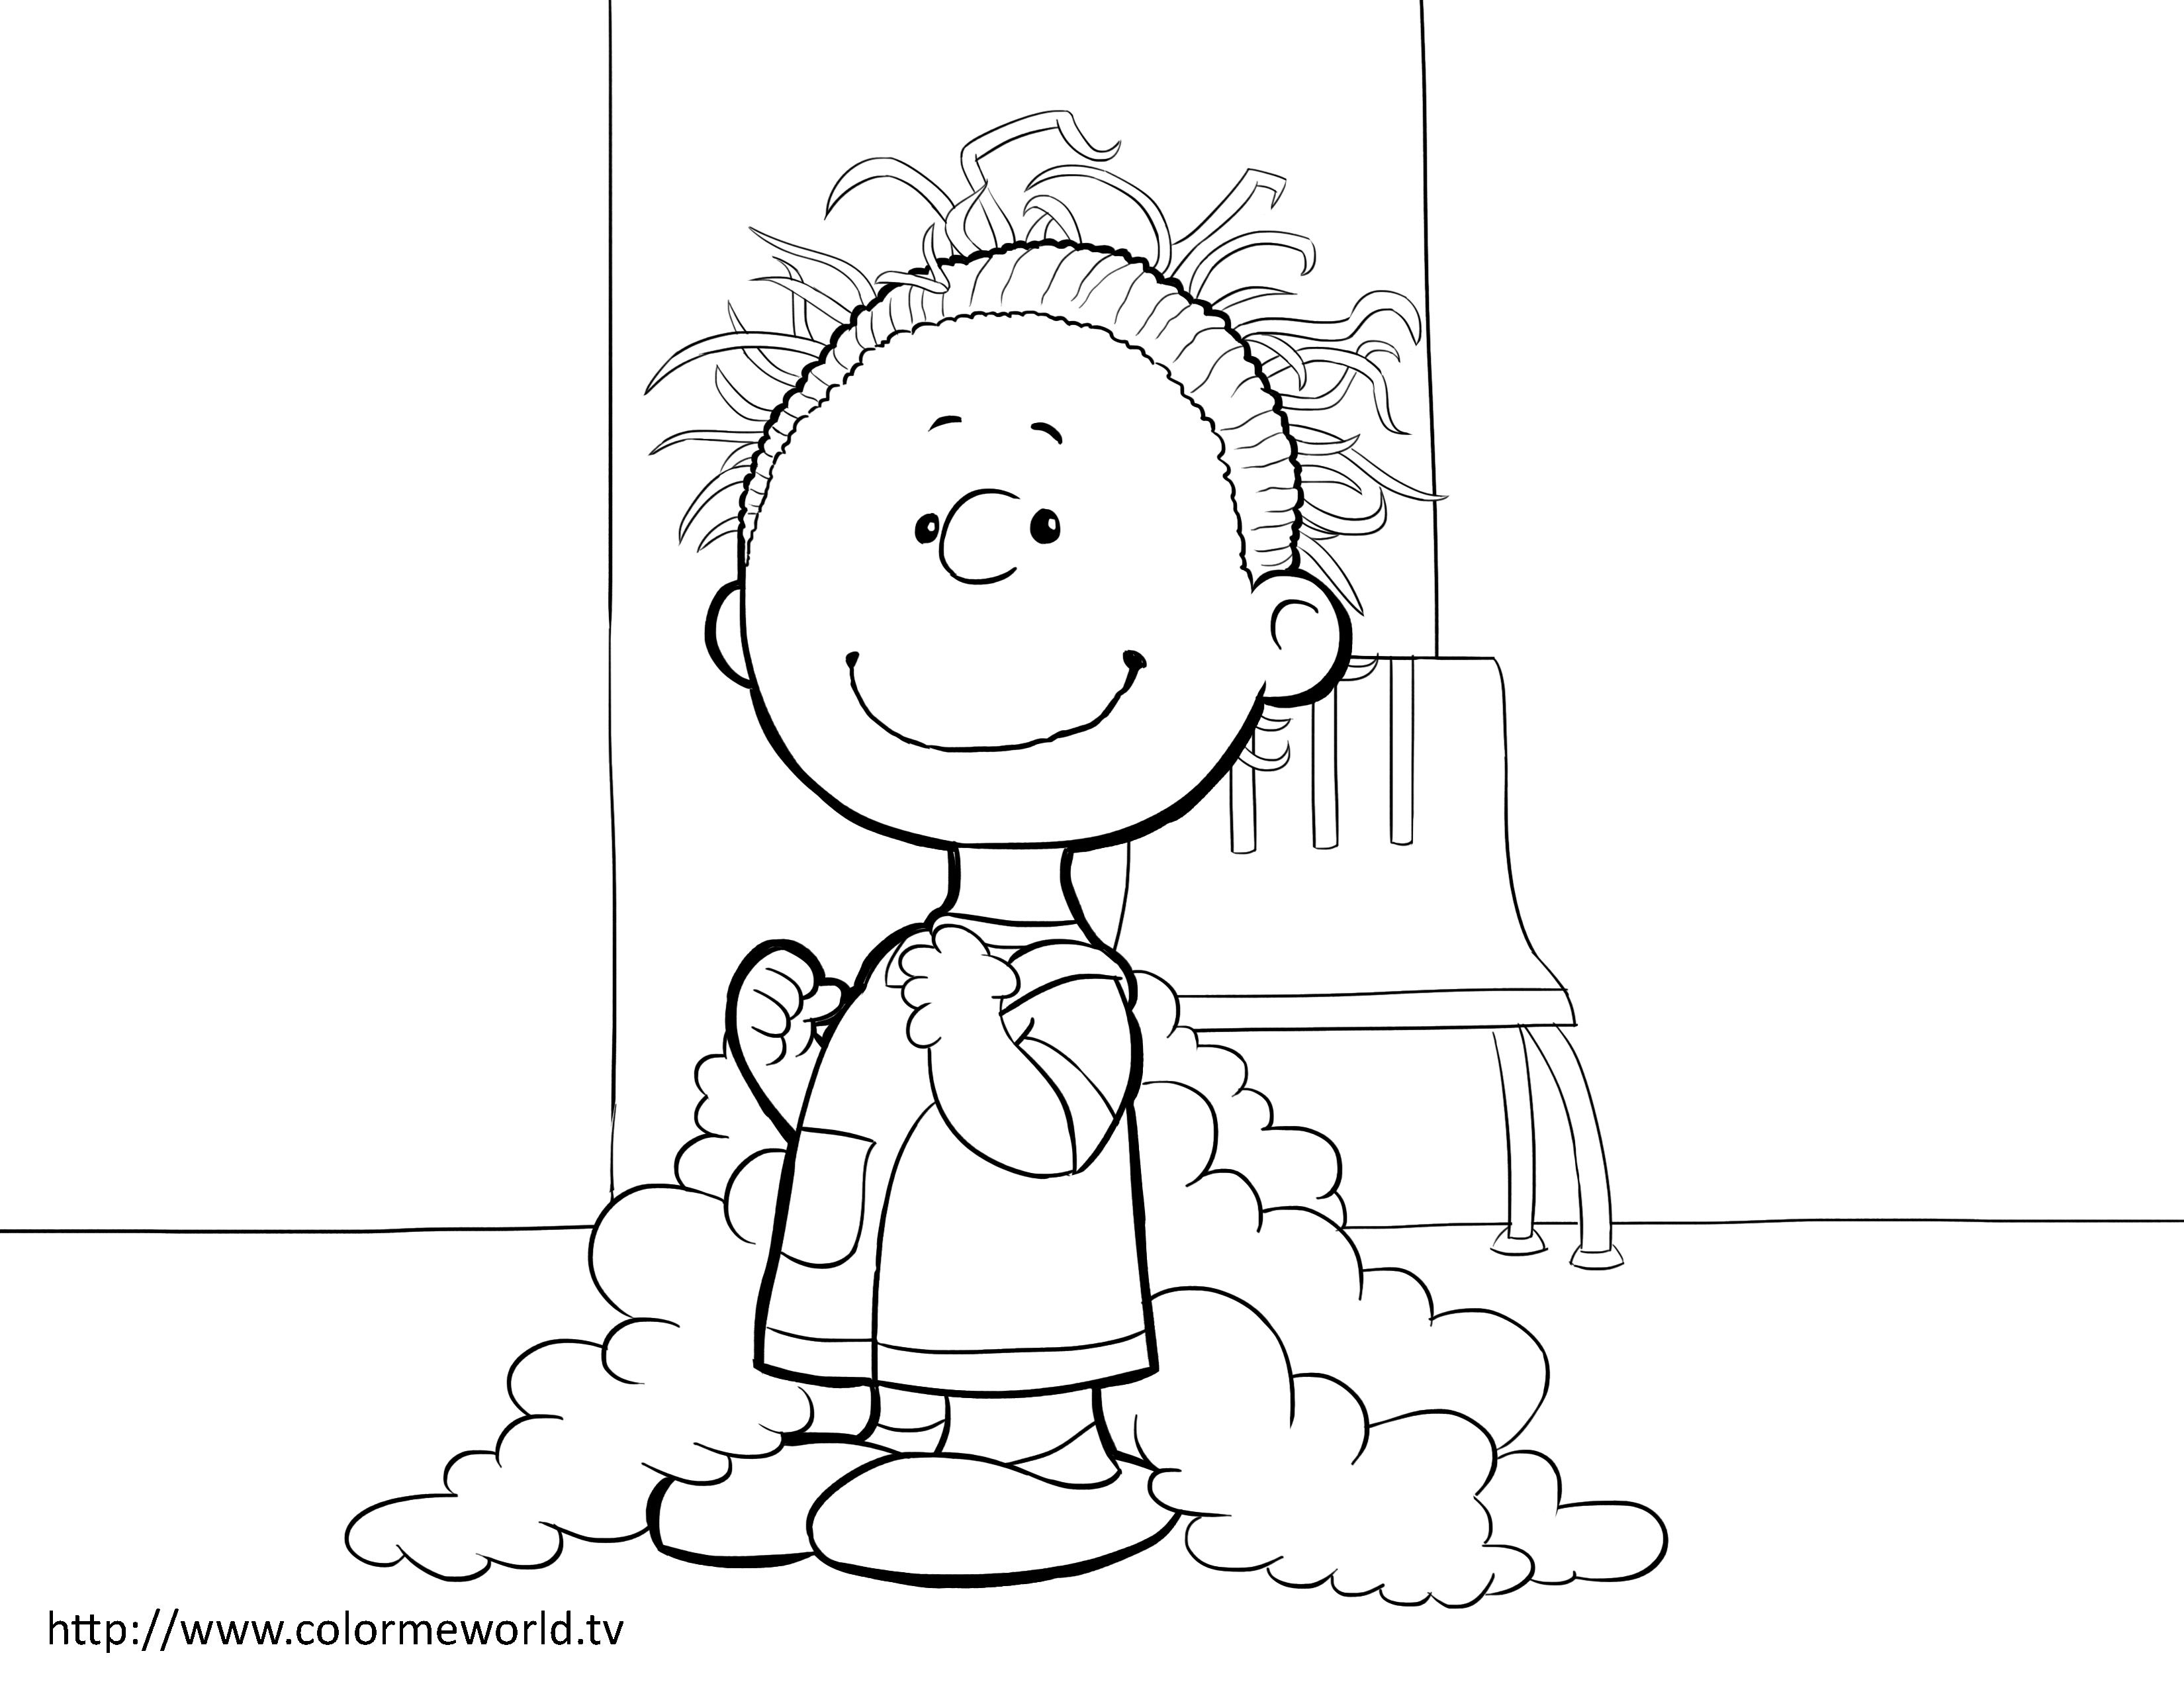 Pig Pen Pdf Printable Coloring Page Peanuts Coloring Pages